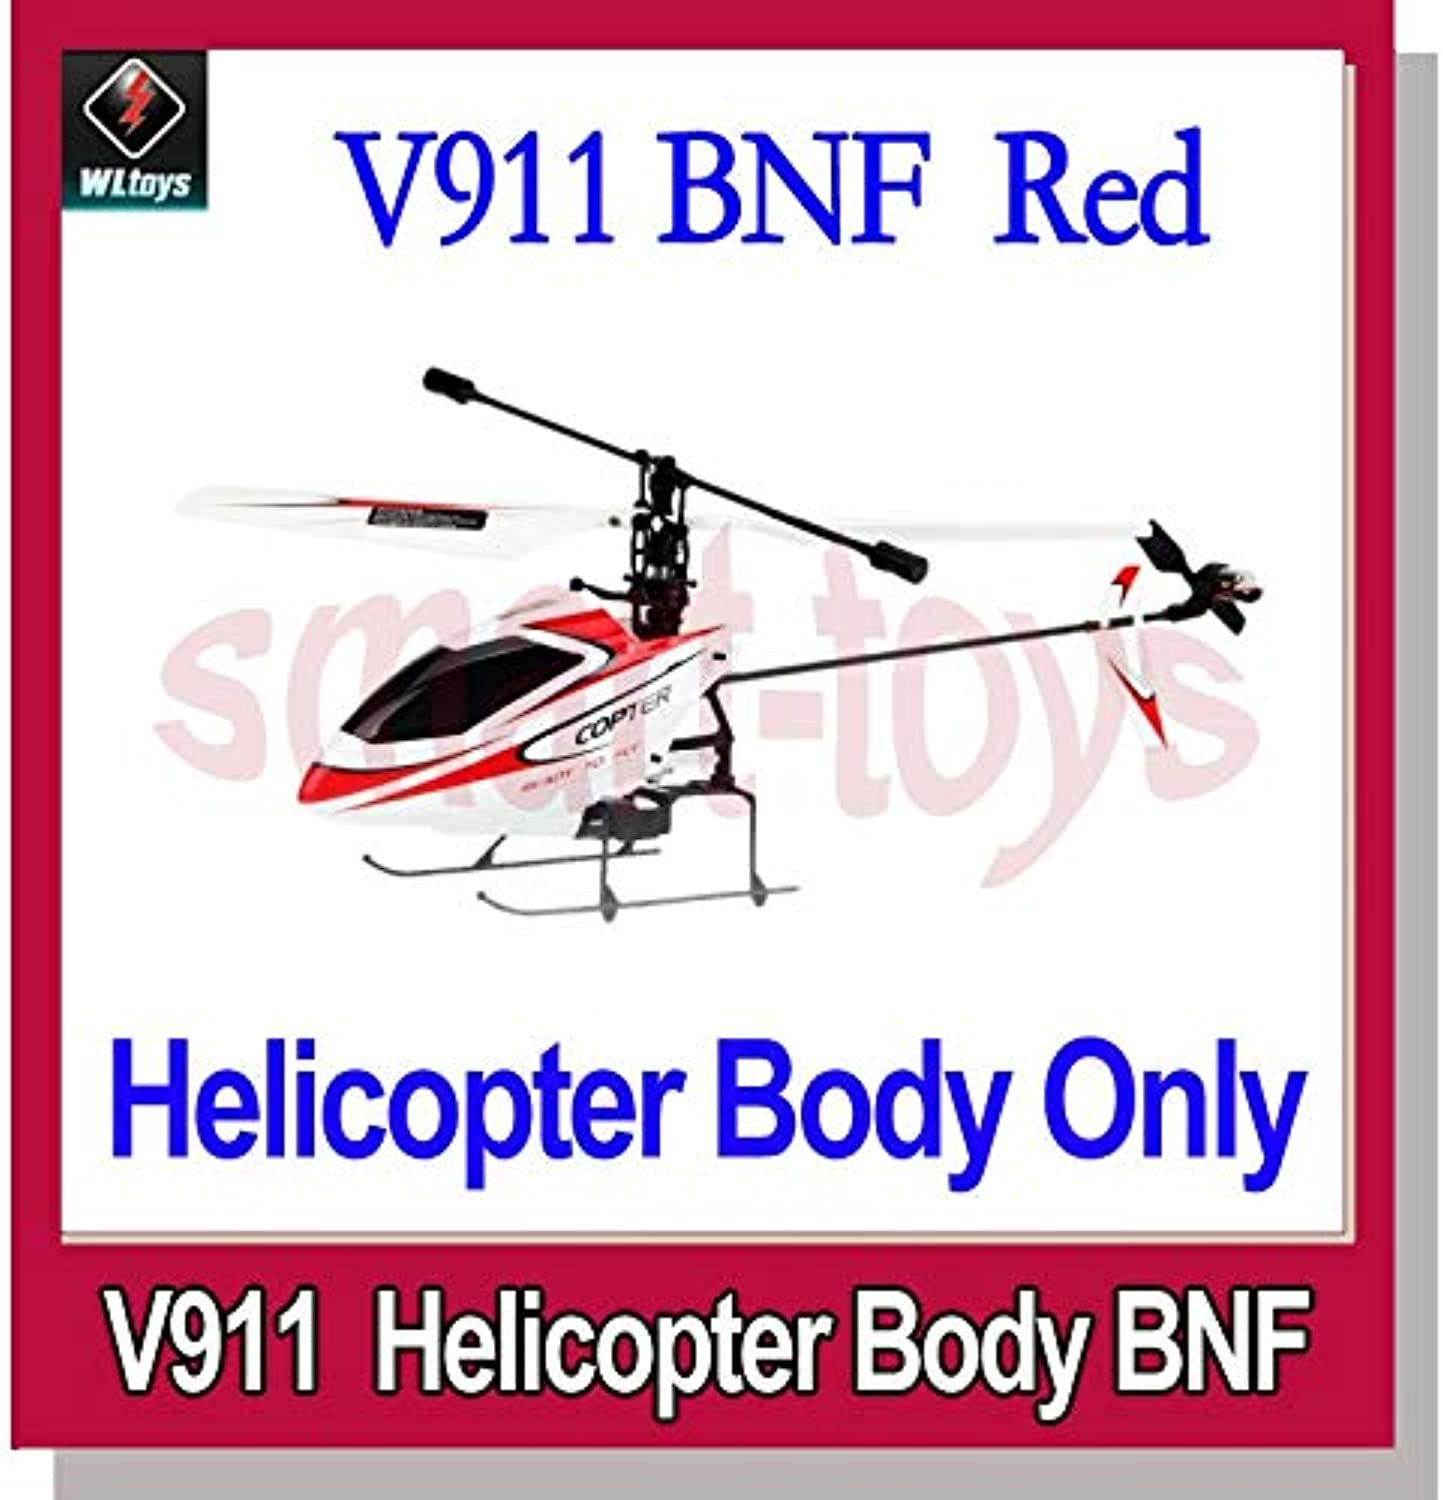 Generic WLtoys V911 2.4GHz 4CH Micro Singleredor RC Helicopter BNF with Gyro Body Only Red